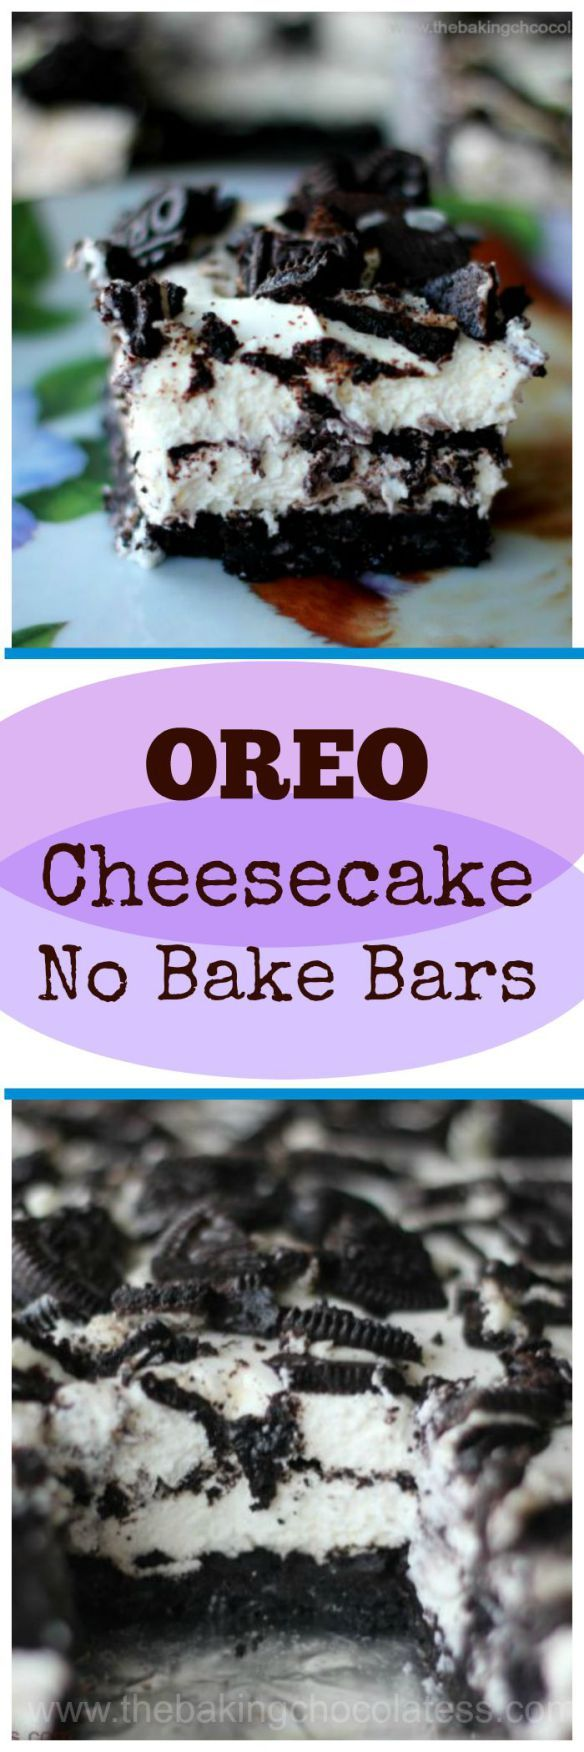 oreo cheesecake no bake bars no bake bars oreo cheesecake food recipes